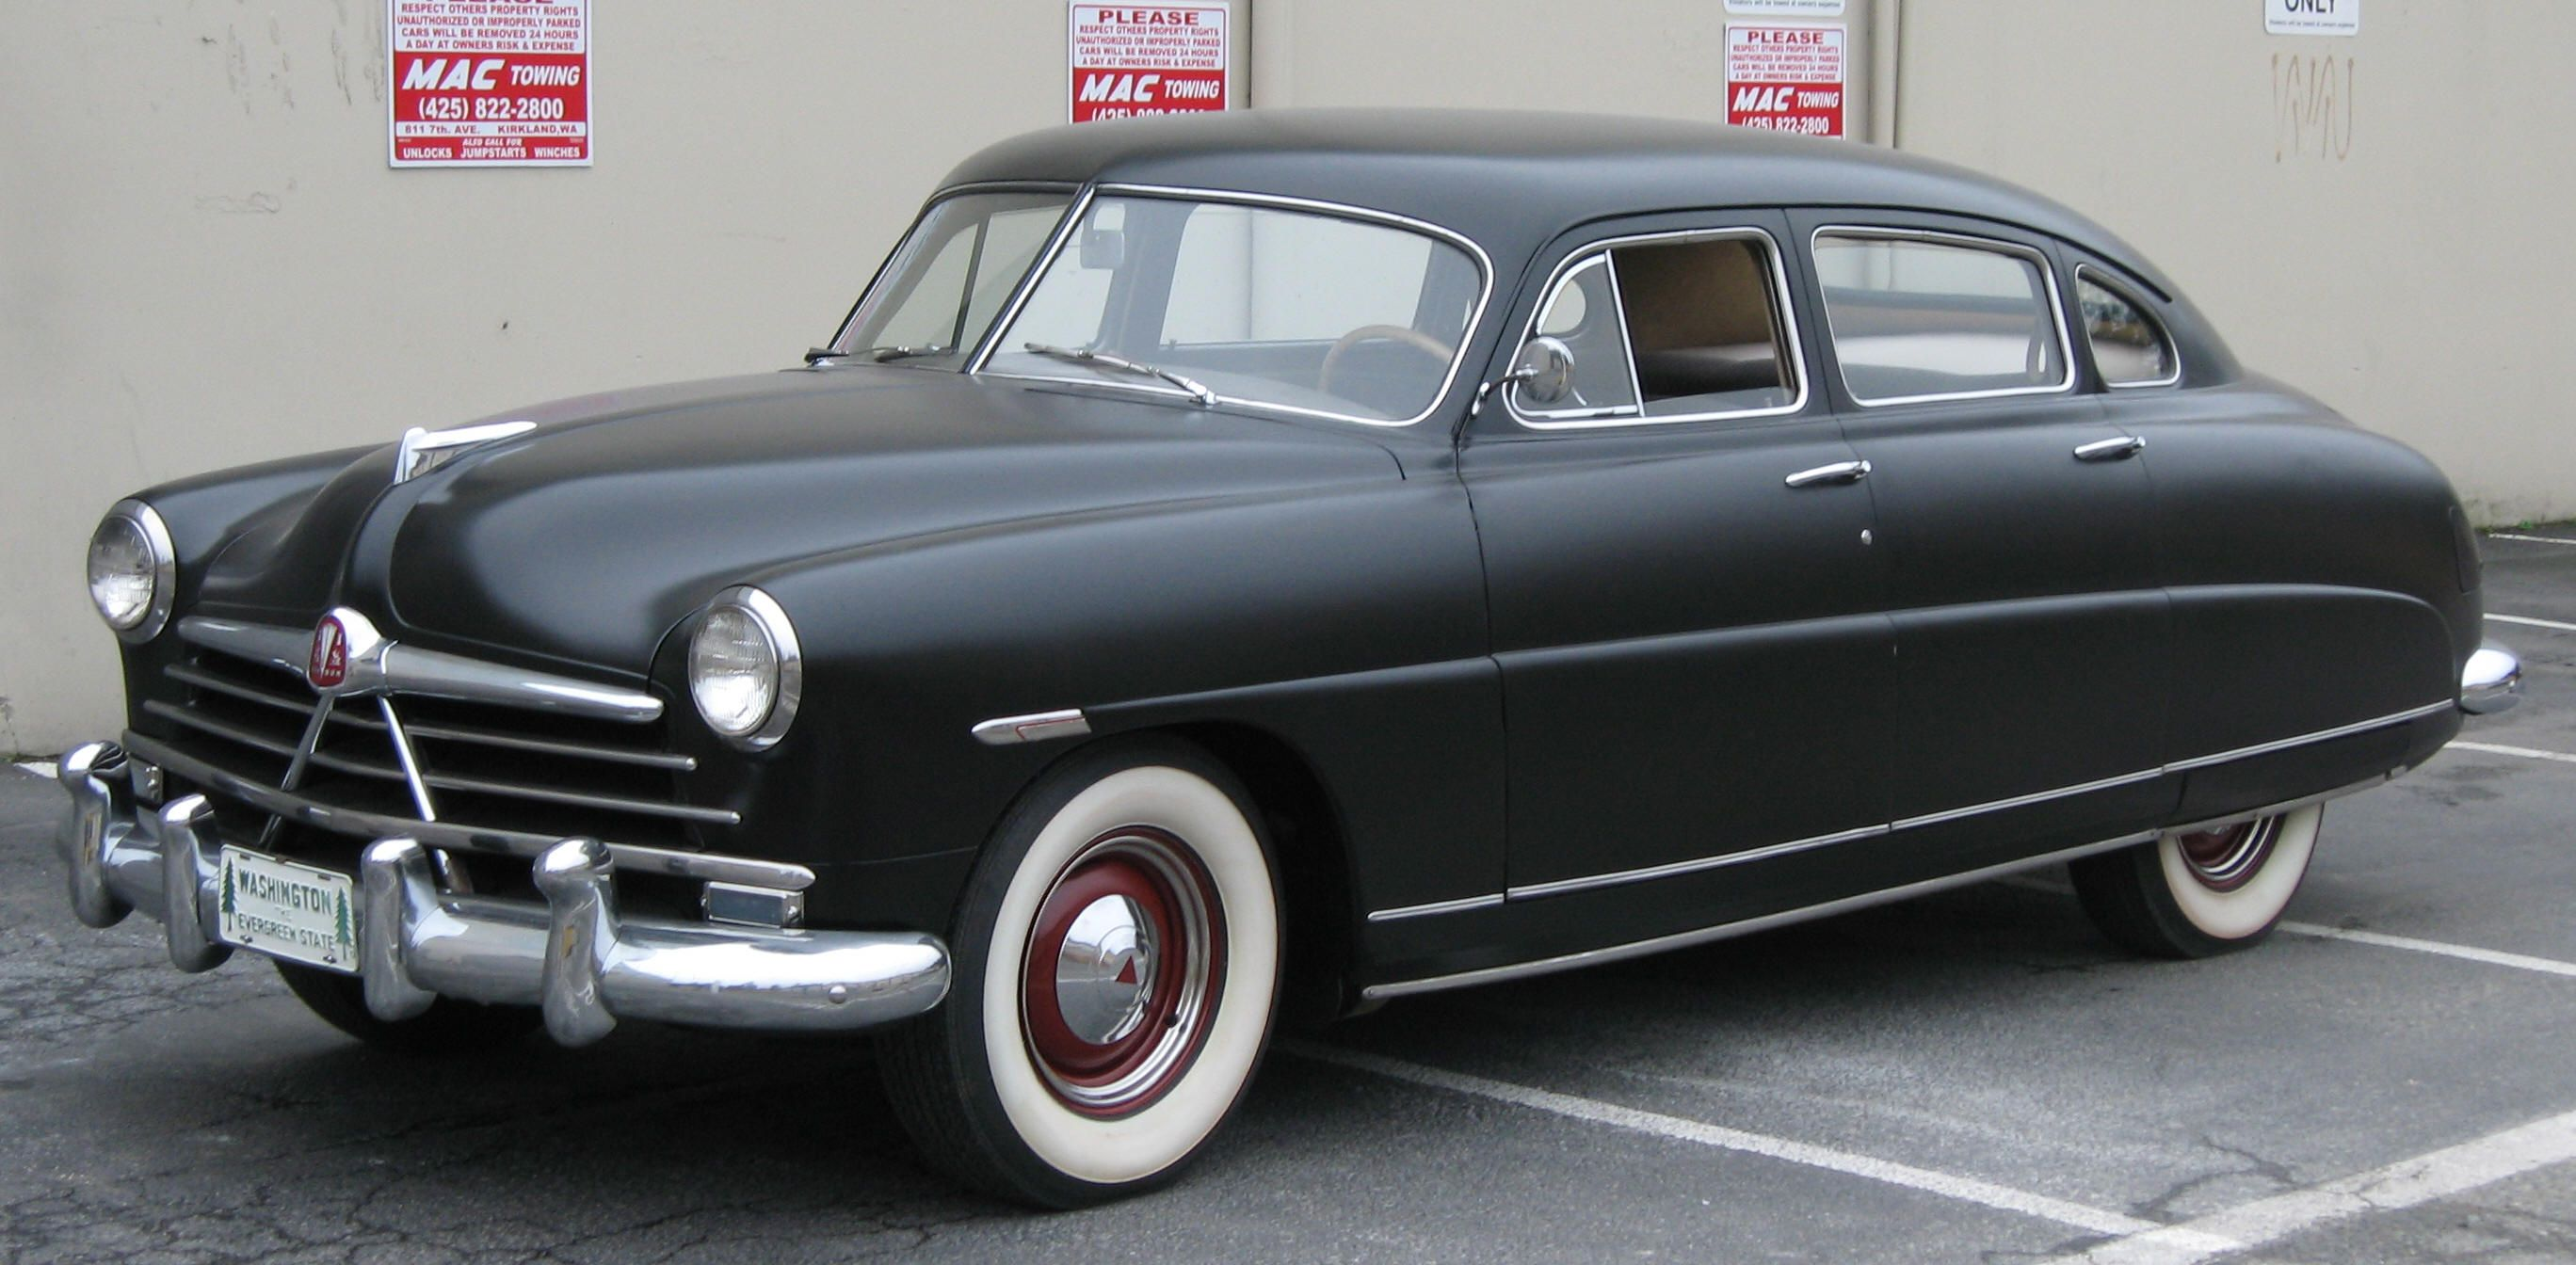 I Love The 1949 Hudson Ahead Of Its Time I Owned One 4inch